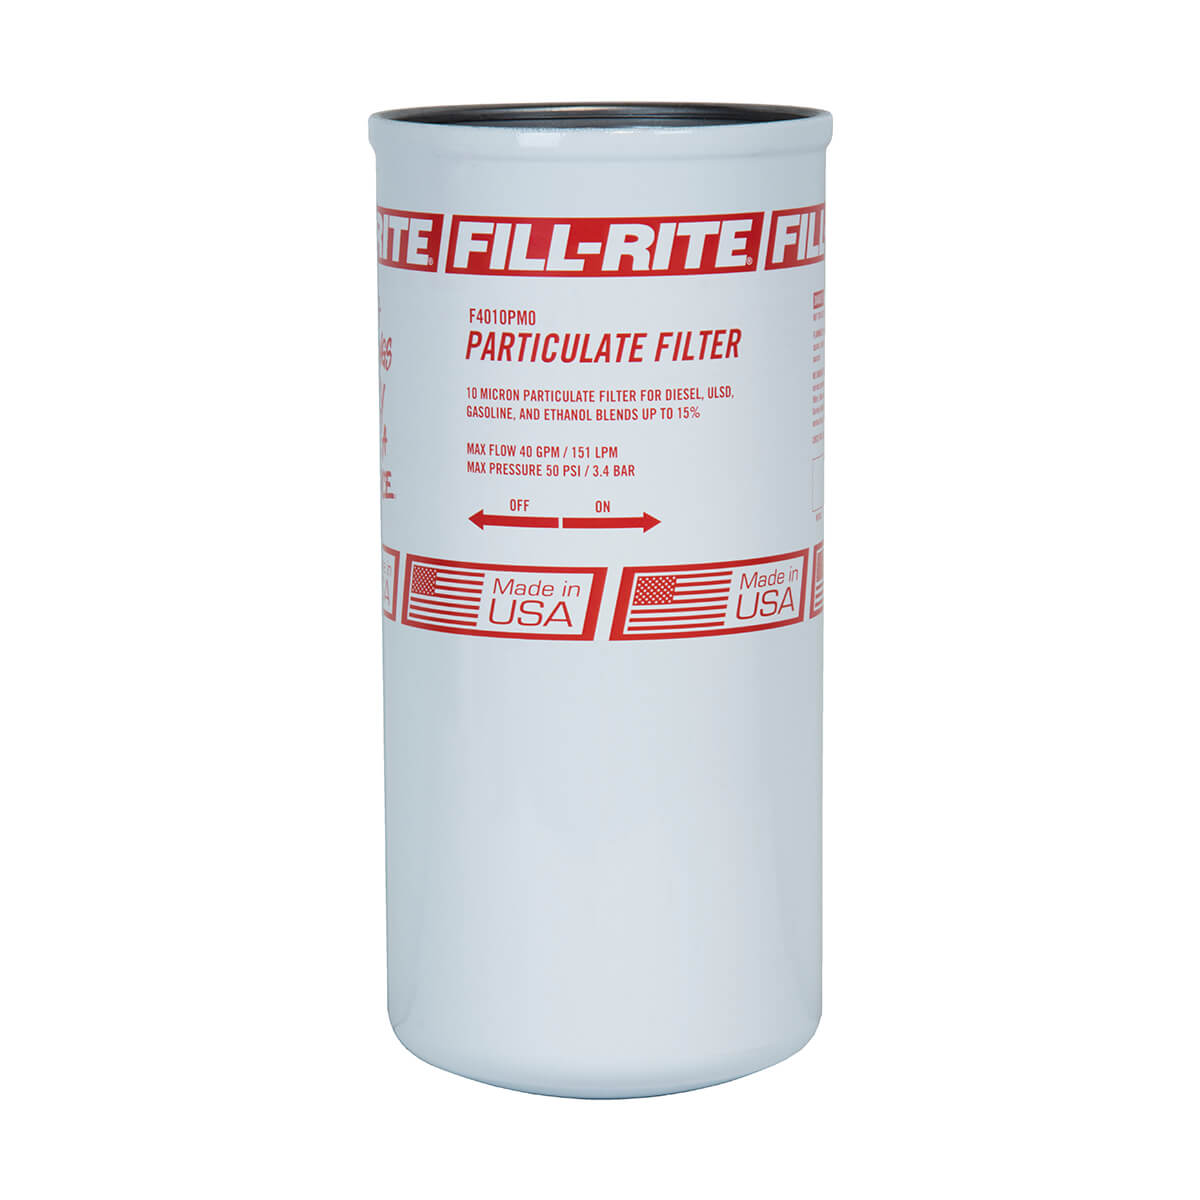 40 GPM Particulate Spin on Filter - 10 Micron